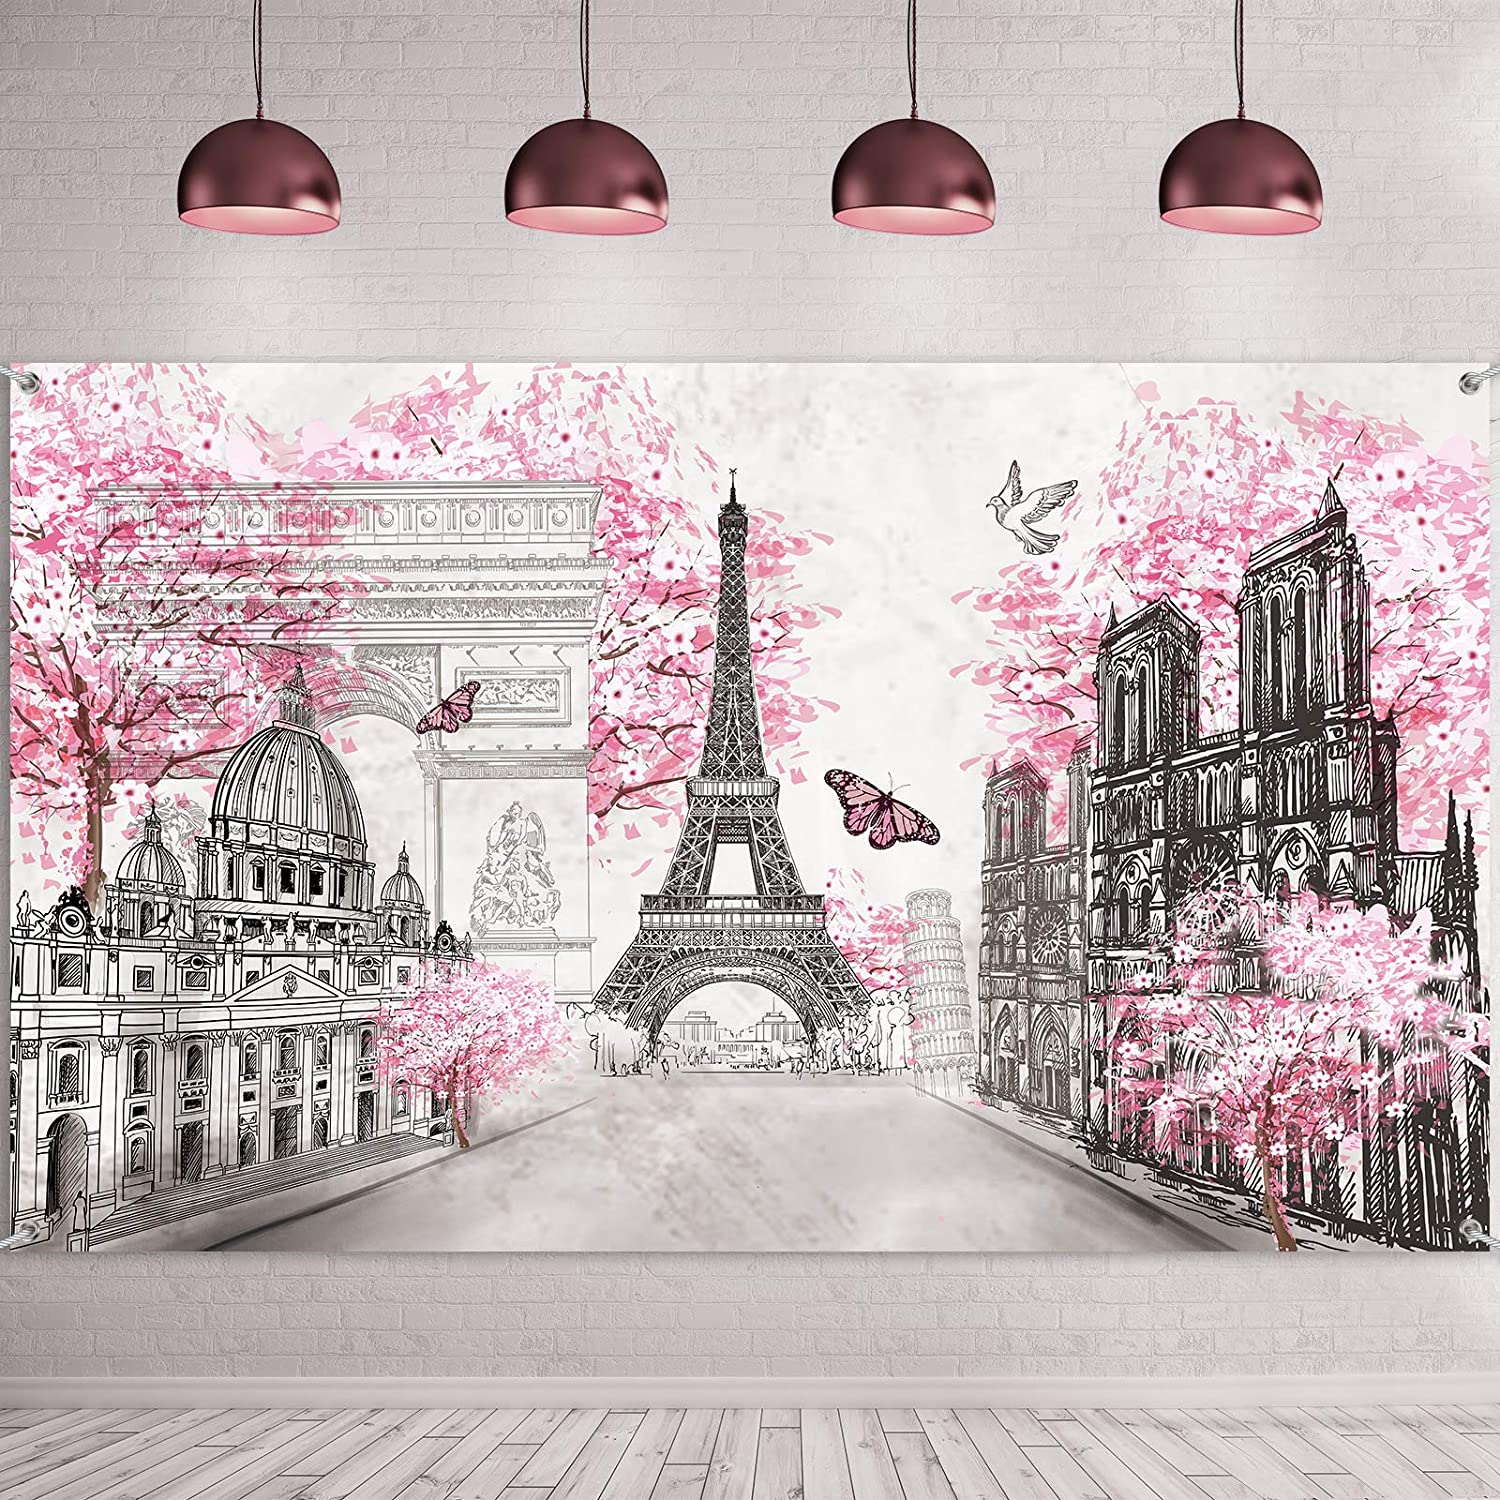 Paris Tapestry Backdrop Paris Wall Art Eiffel Tower Photo Banner Background European City Landscape Pink Wall Hanging Decor for Living Room Girl Bedroom Paris Themed Party Decoration, 72.8 x 43.3 Inch